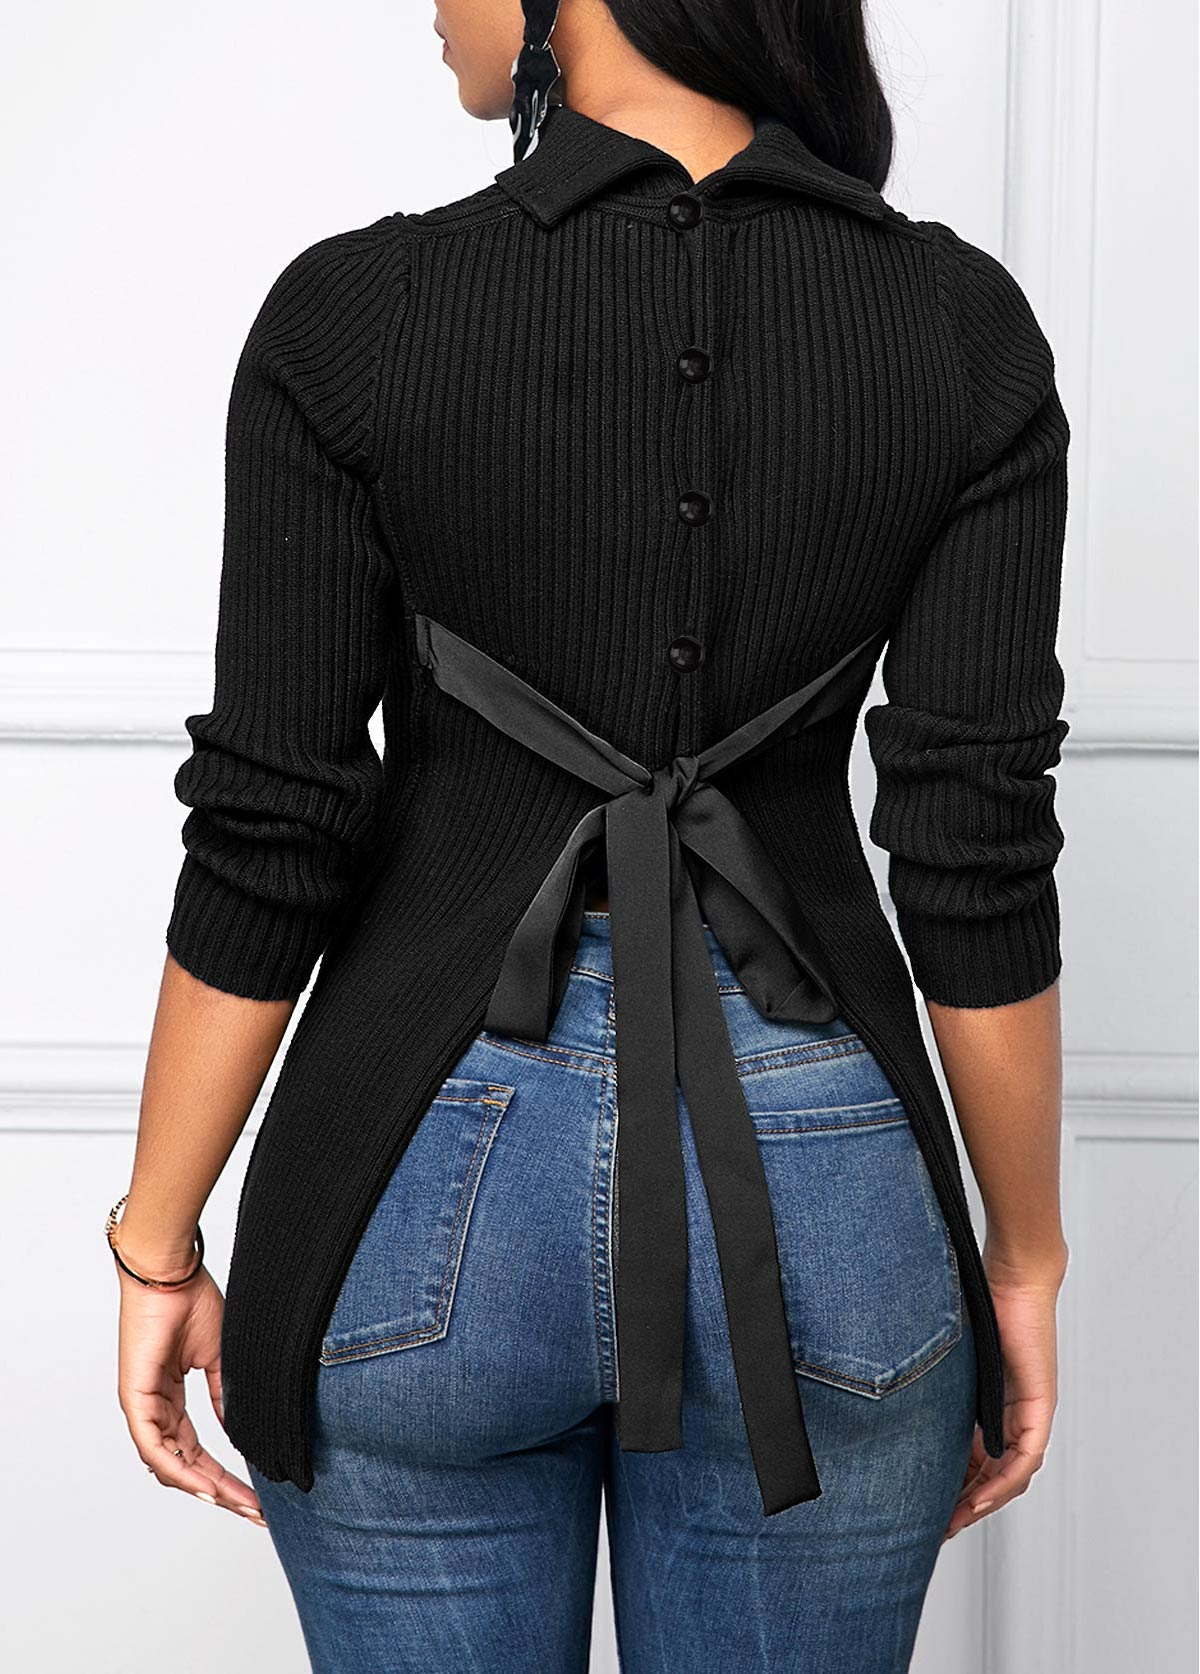 Tie Back Button Decorated Black Sweater